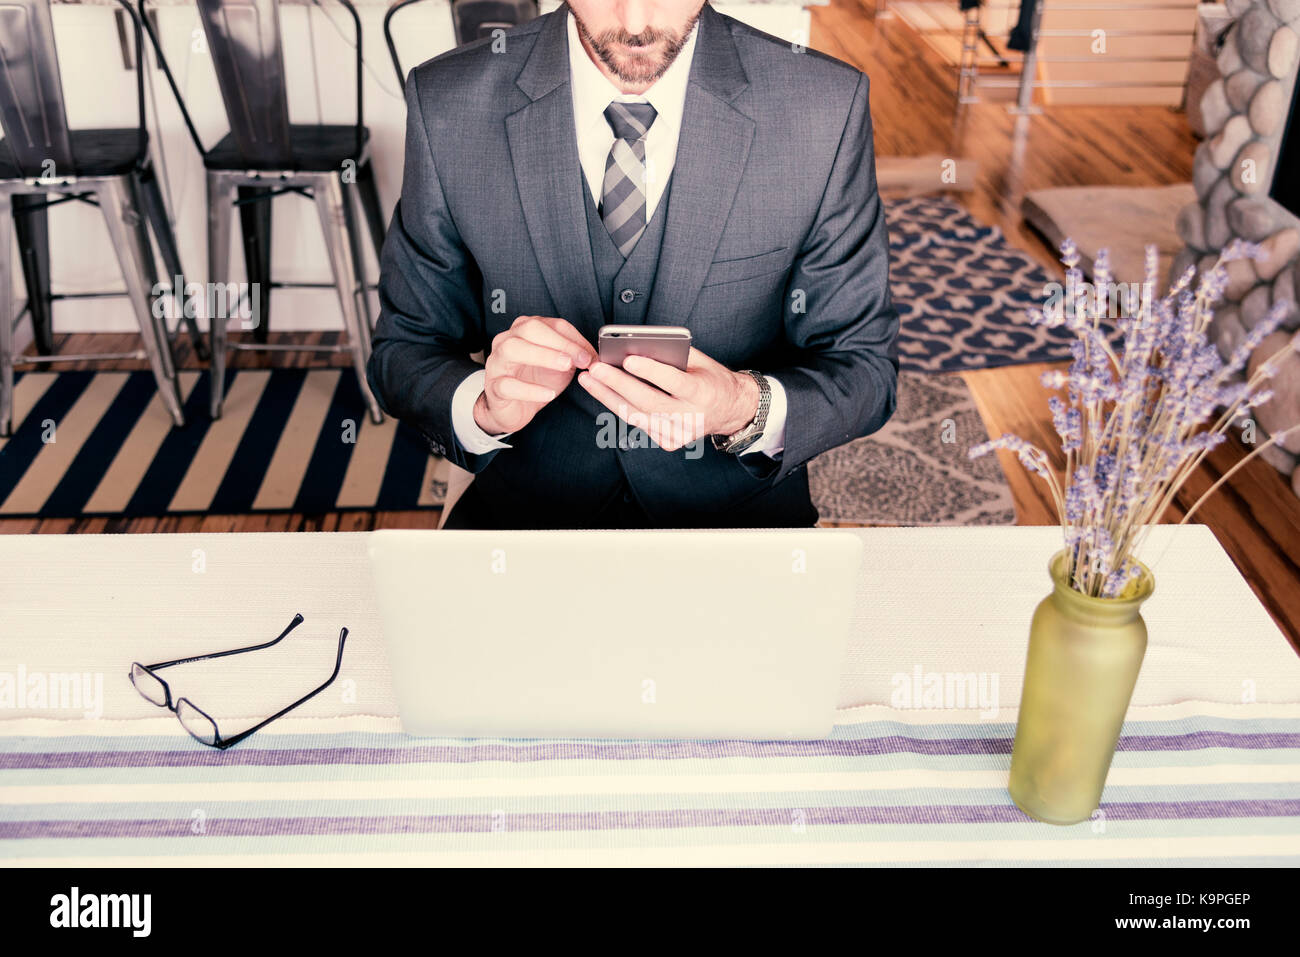 Man sitting at office table using a mobile phone to send a text message wearing a very nice suit with tie and vest. - Stock Image